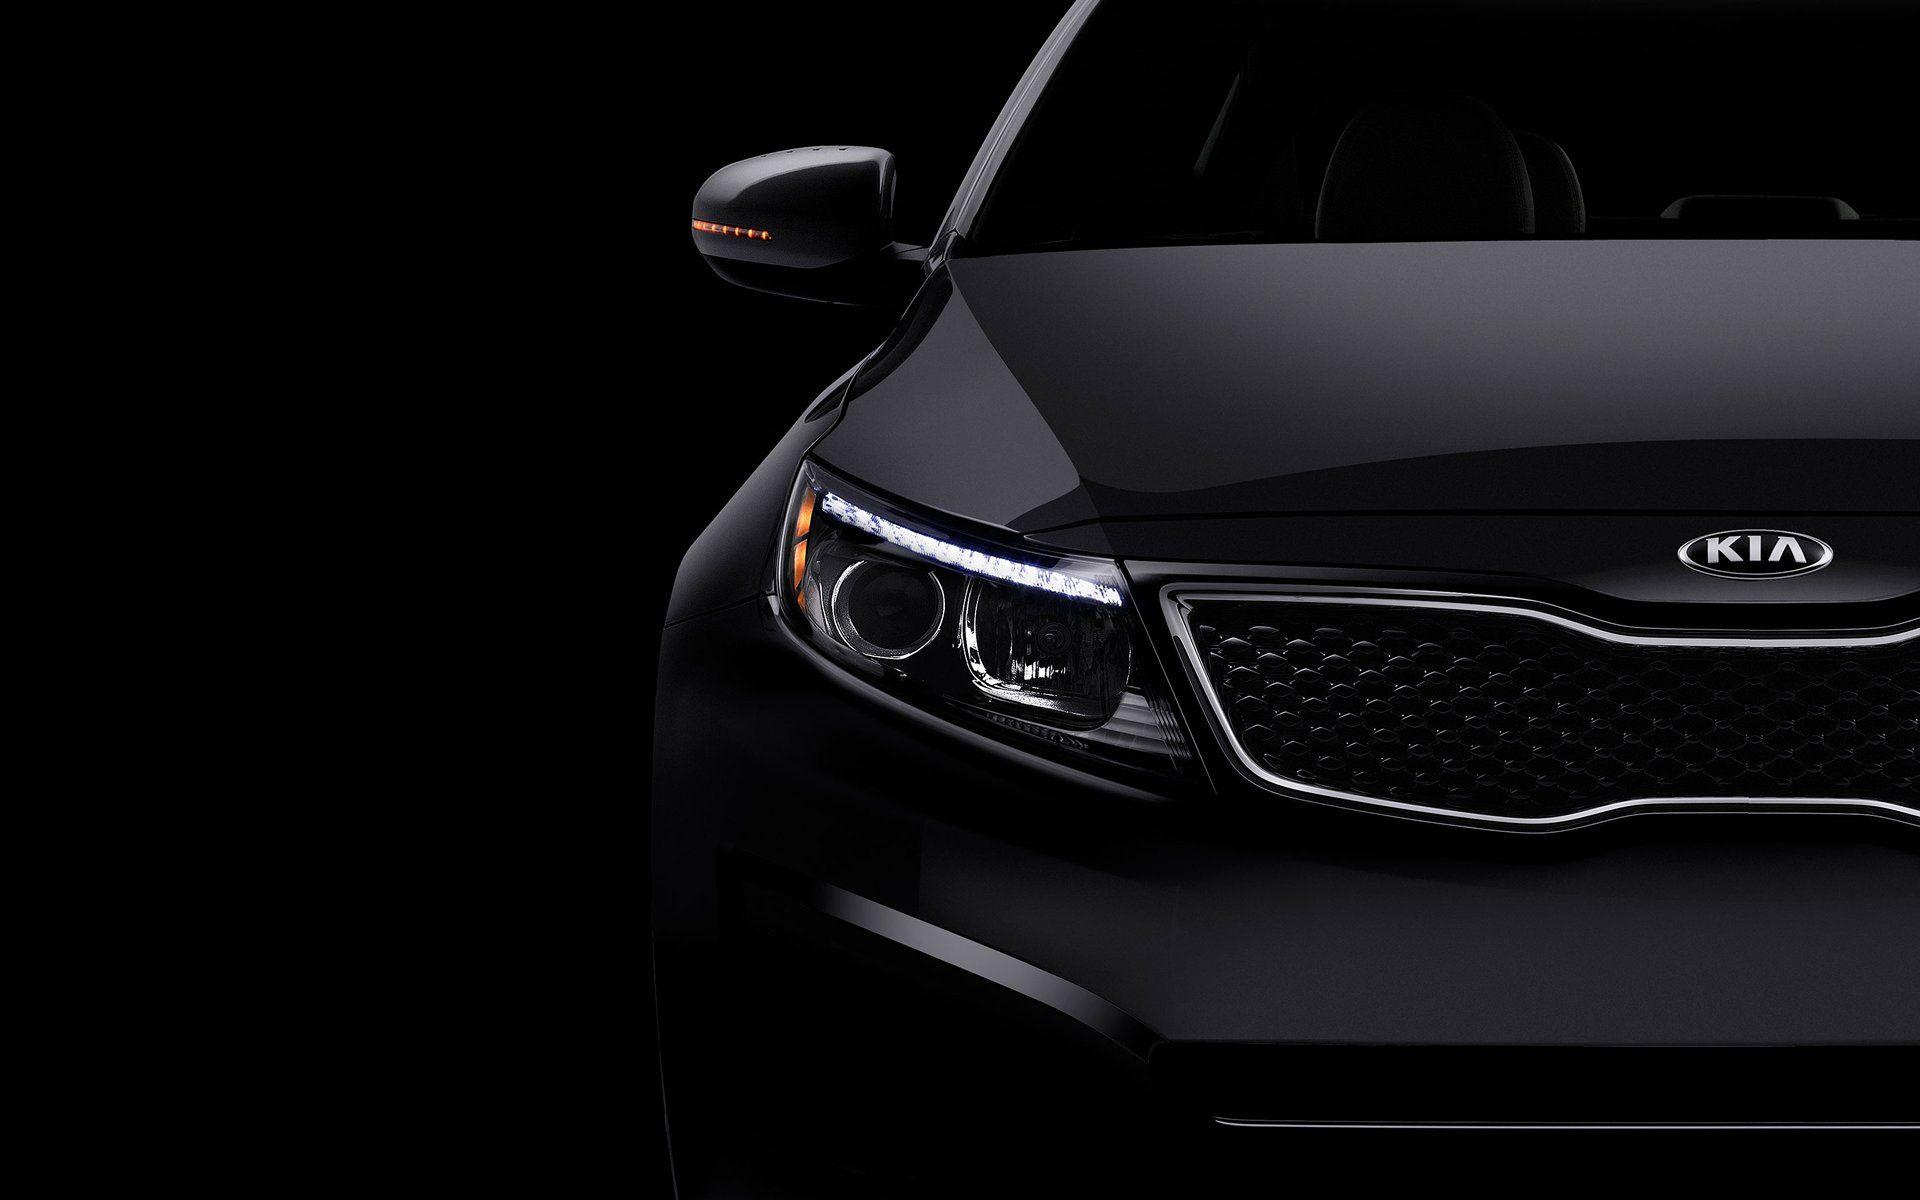 Kia Optima wallpaper | 1920x1200 | #14229